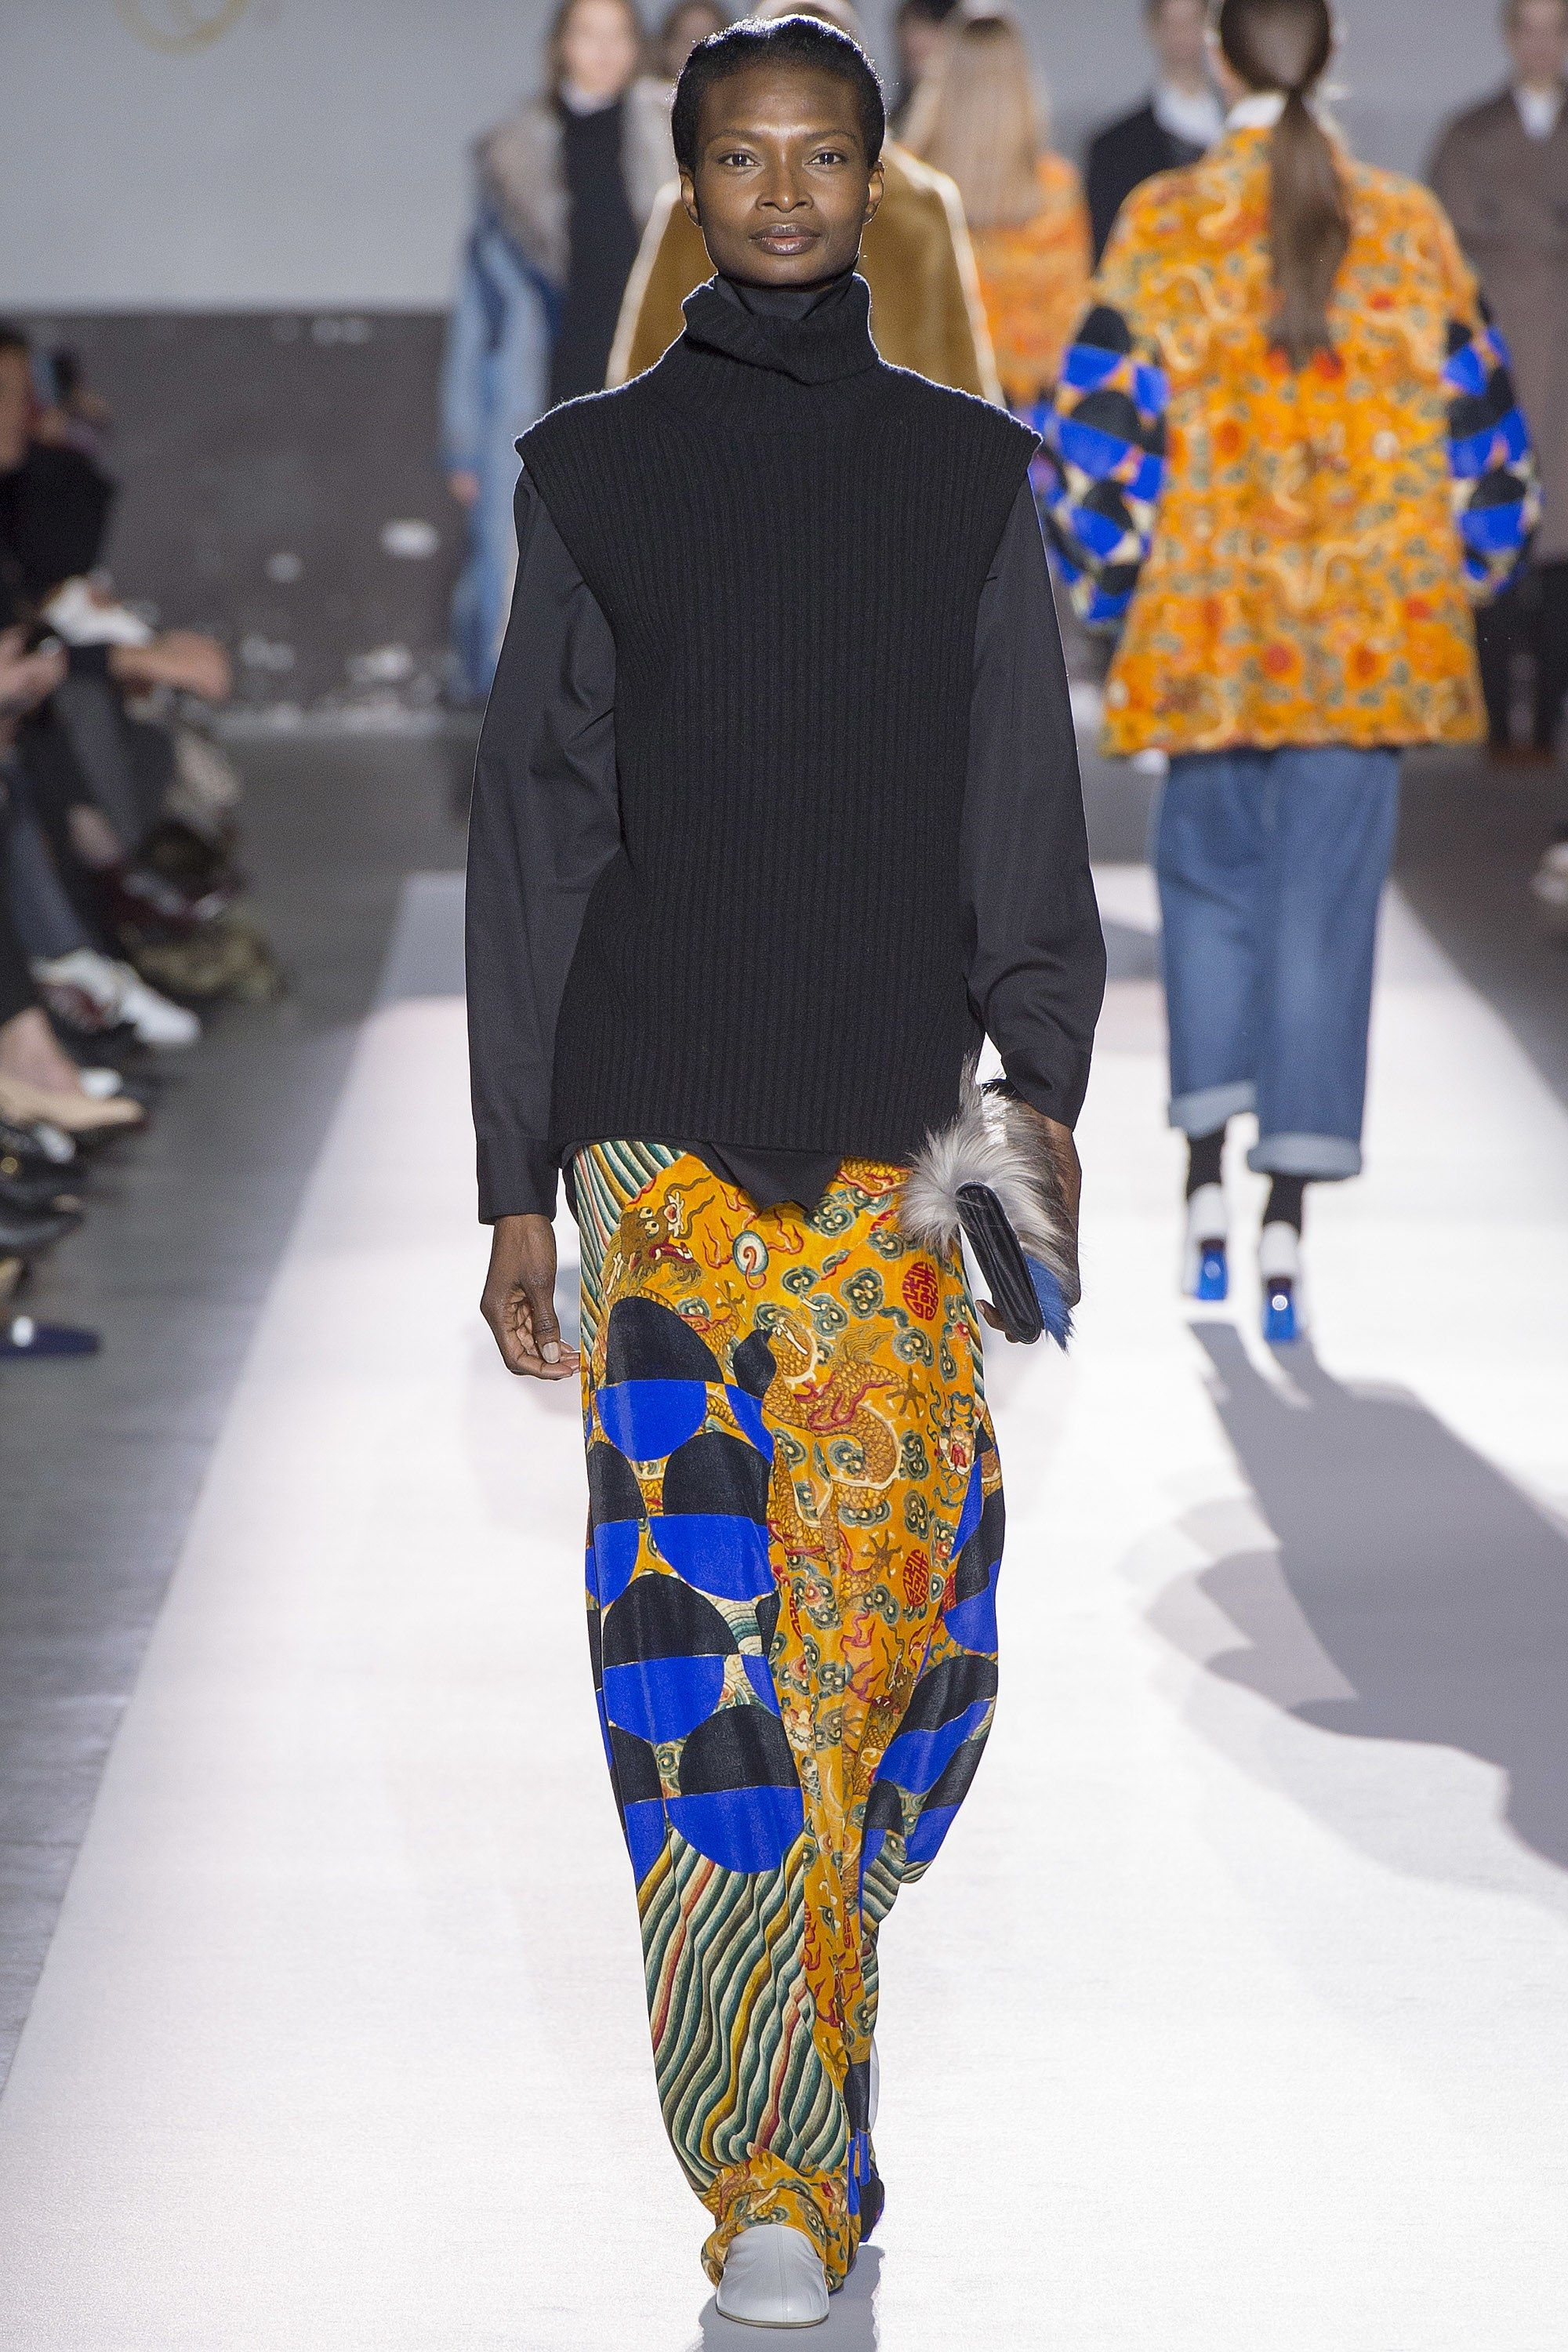 Dries van noten fall 2017 ready to wear fashion show vans dries van noten fall 2017 ready to wear fashion show ombrellifo Images